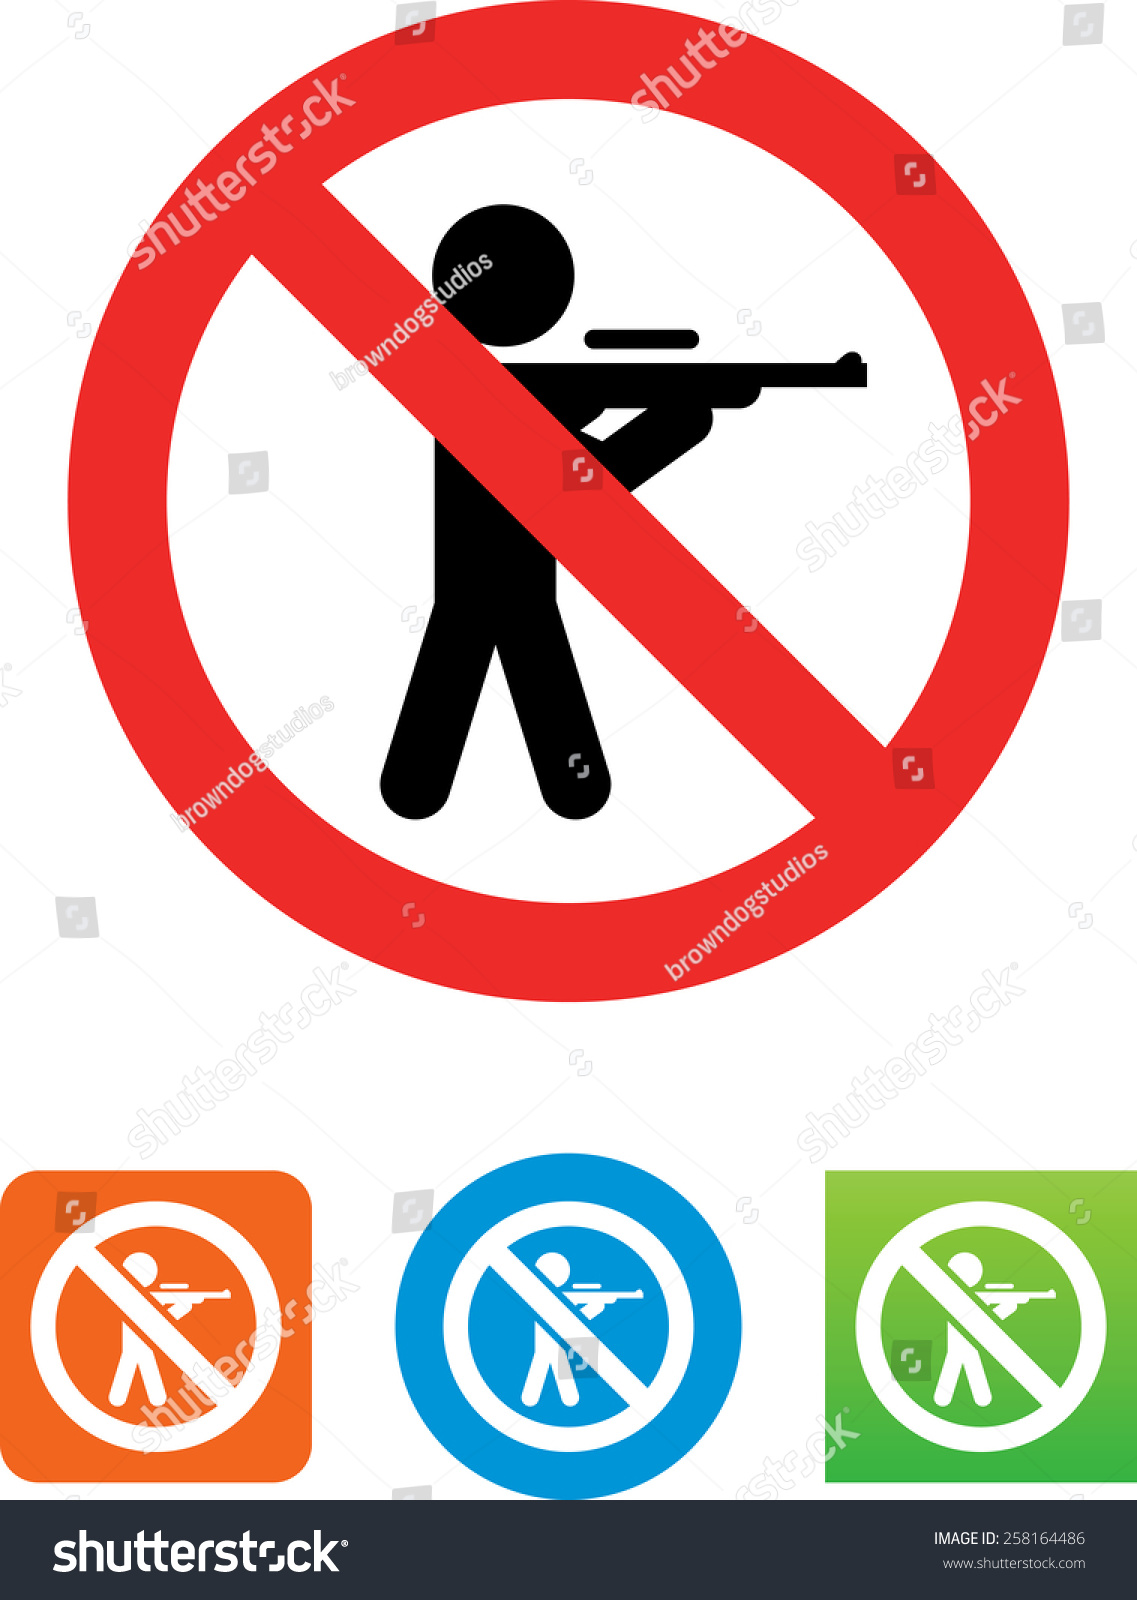 no hunting allowed symbol vector stock vector 258164486 no hunting allowed symbol for vector icons for video mobile apps web